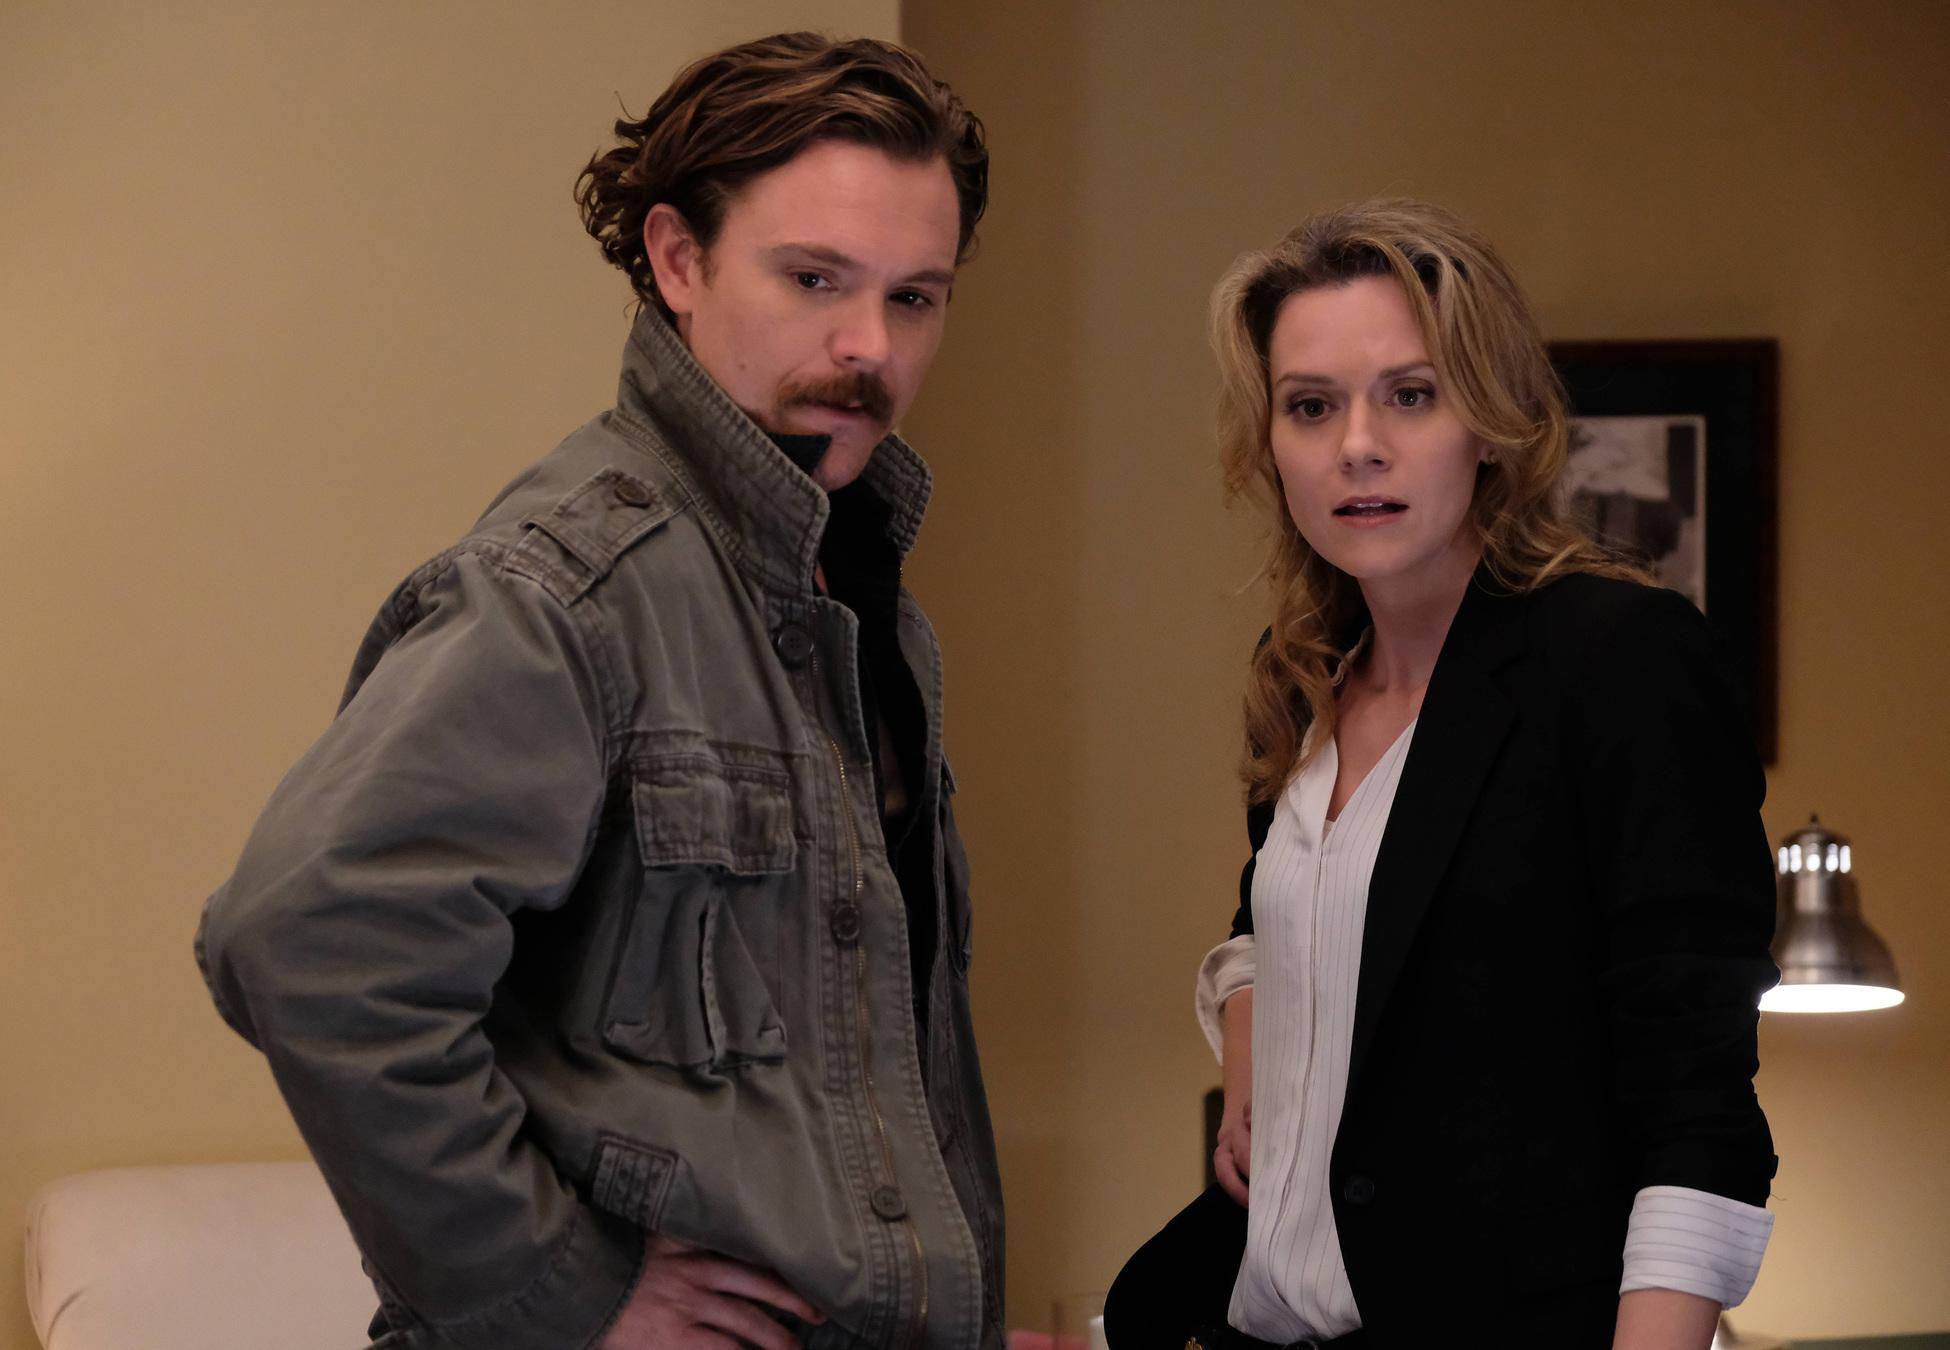 Clayne Crawford as Riggs, Hilarie Burton as Palmer